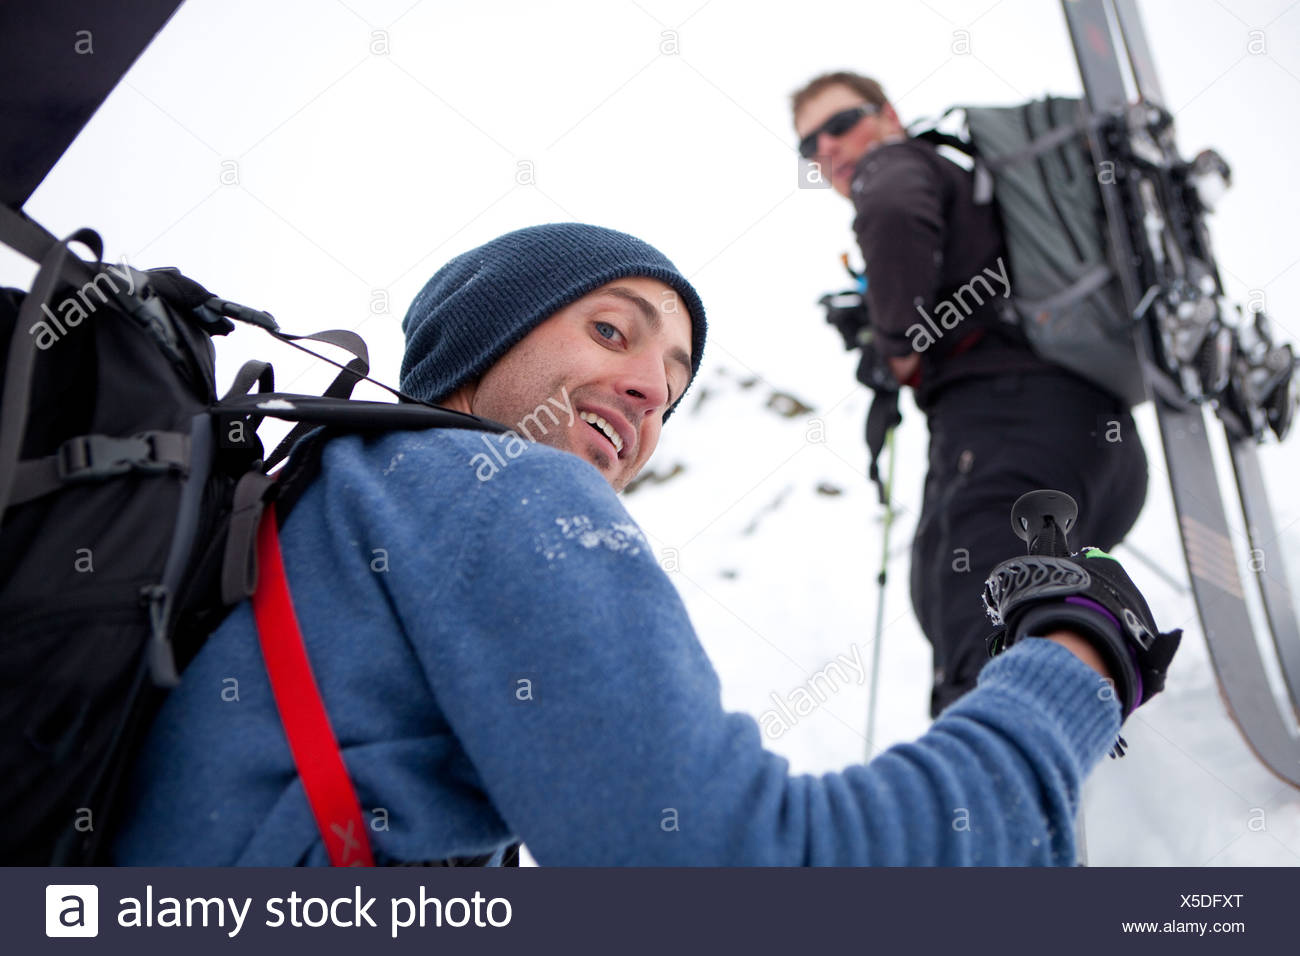 Two men pause for a beak on their way up to the top of Mt Superior, Utah - Stock Image